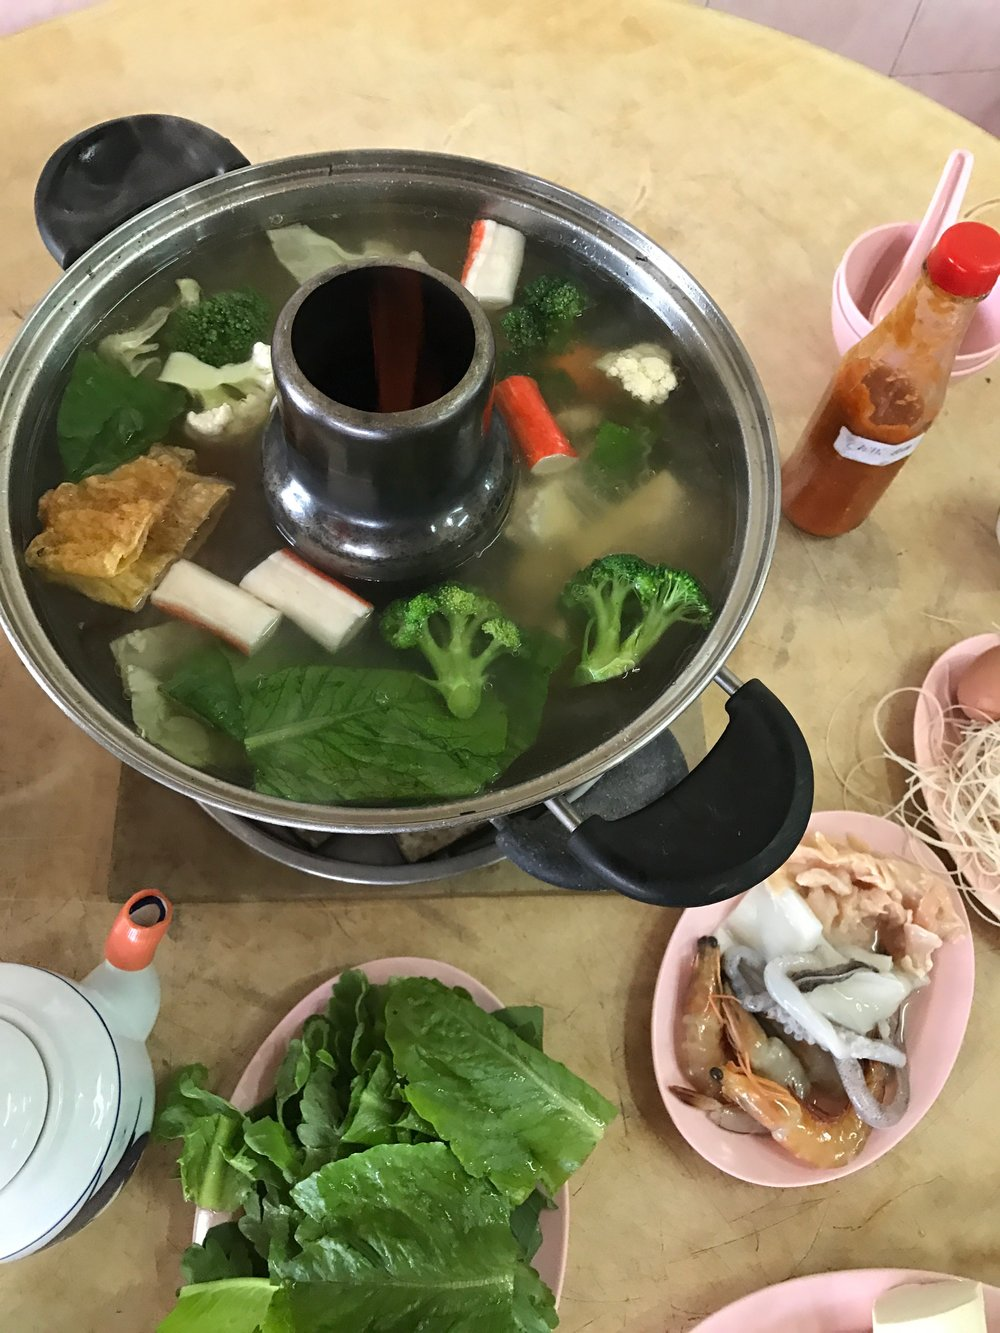 """Steamboat"" - fresh veggies, noodles, and meat (chicken, prawns, squid, etc) which you add to the boiling water in the middle to make a kind of soup. Delicious. The jellyfish was omitted."